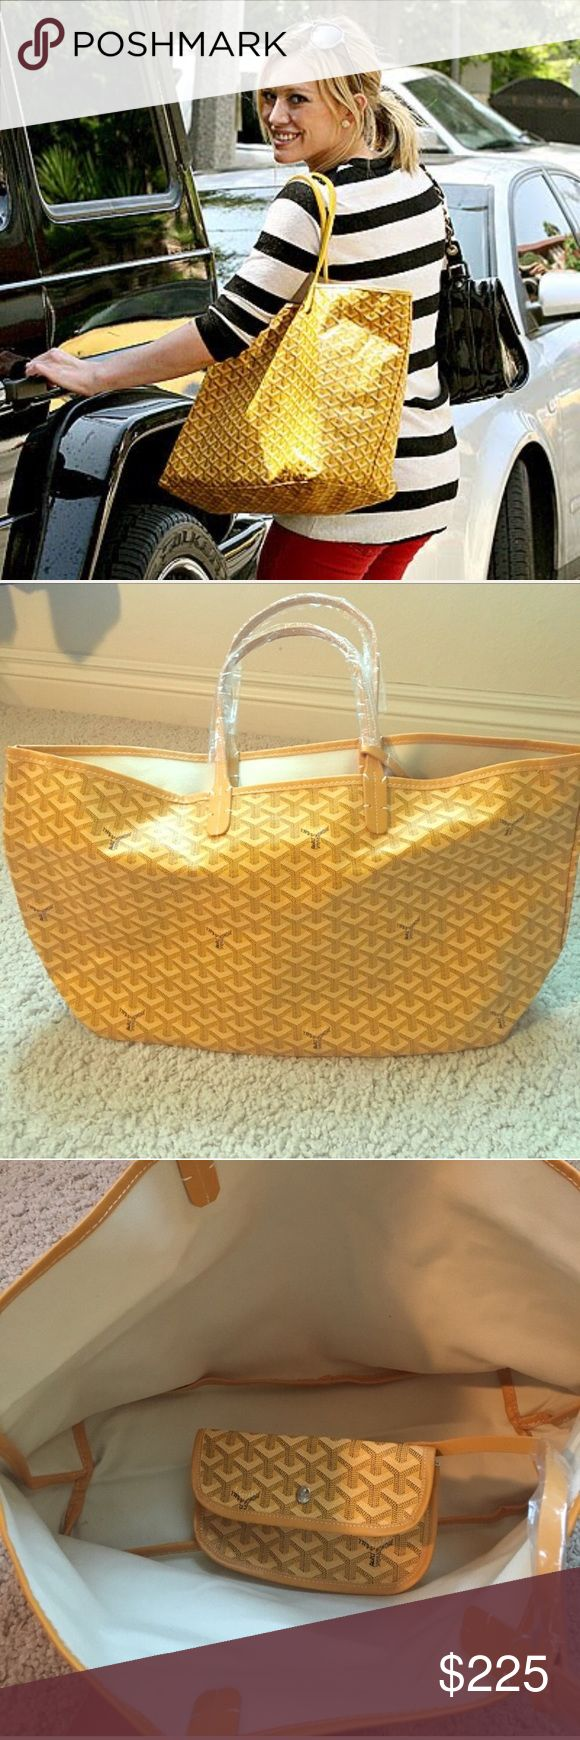 St. Louis GM Yellow Tote  Brand new never worn! Selling for a friend. Great for the beach, a diaper bag, or just because! Measurements are shown in last picture. Please let me know if you have any questions and I will try my best to answer them  Please don't be afraid to make an offer, ALL reasonable offers accepted  Goyard Bags Totes